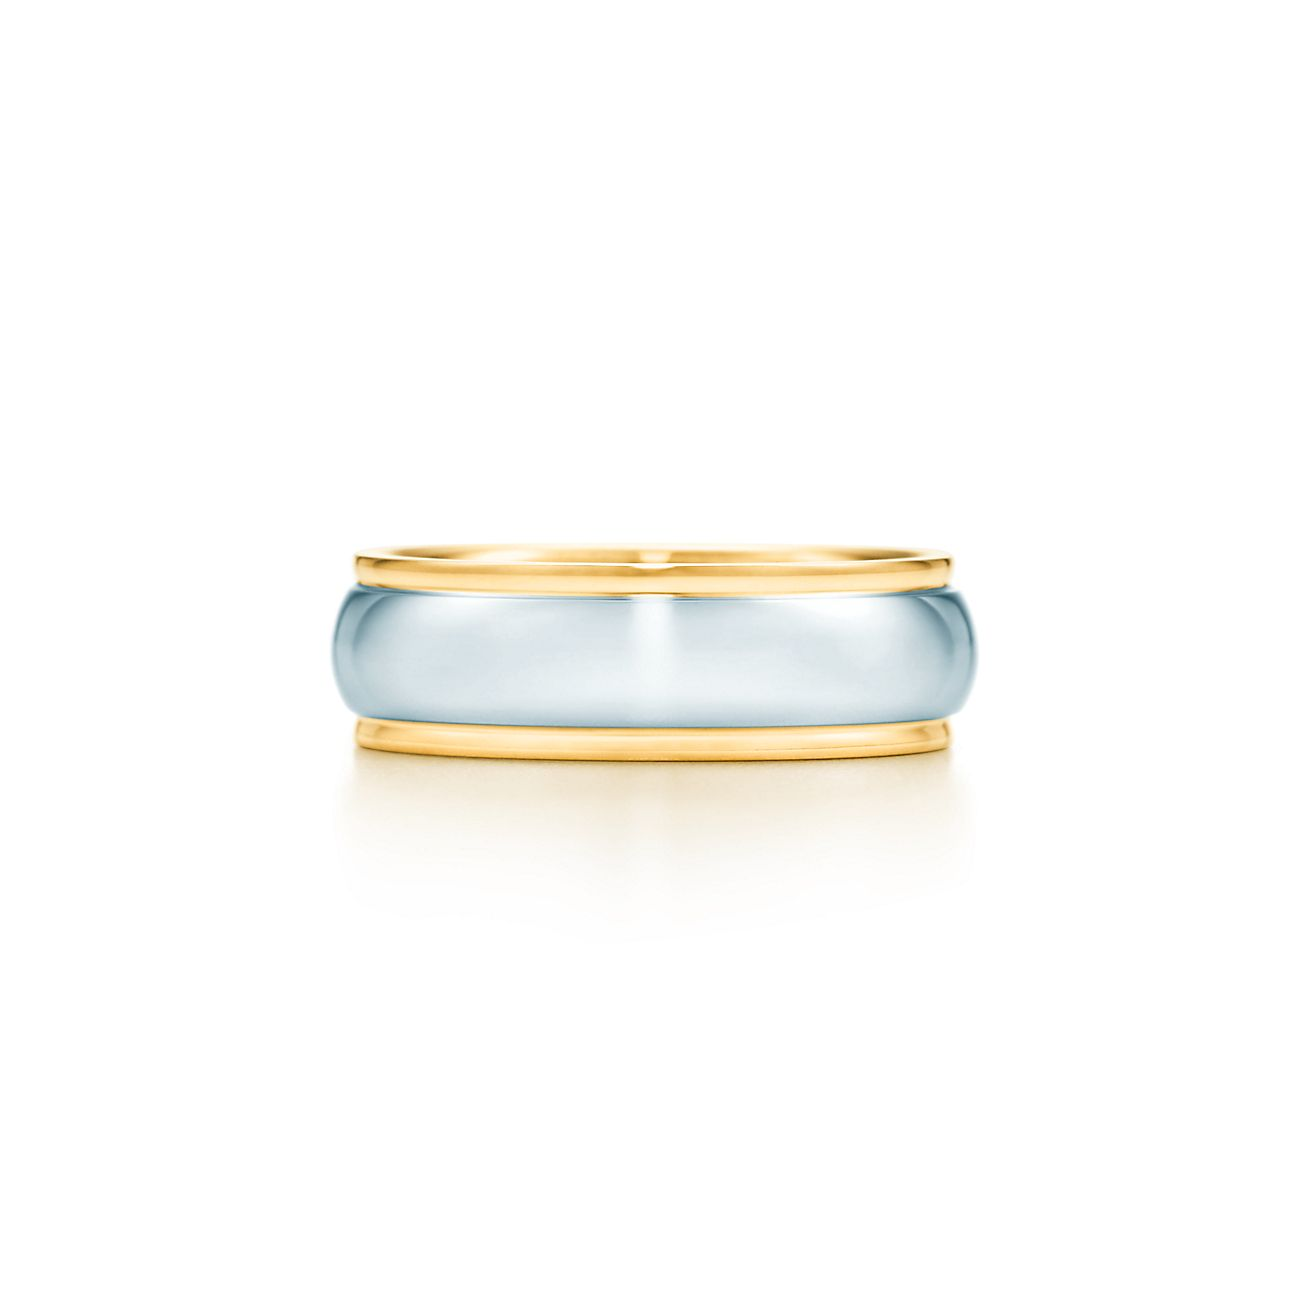 Lucida Bands: Lucida® Band Ring With Platinum In 18k Gold, 6 Mm Wide